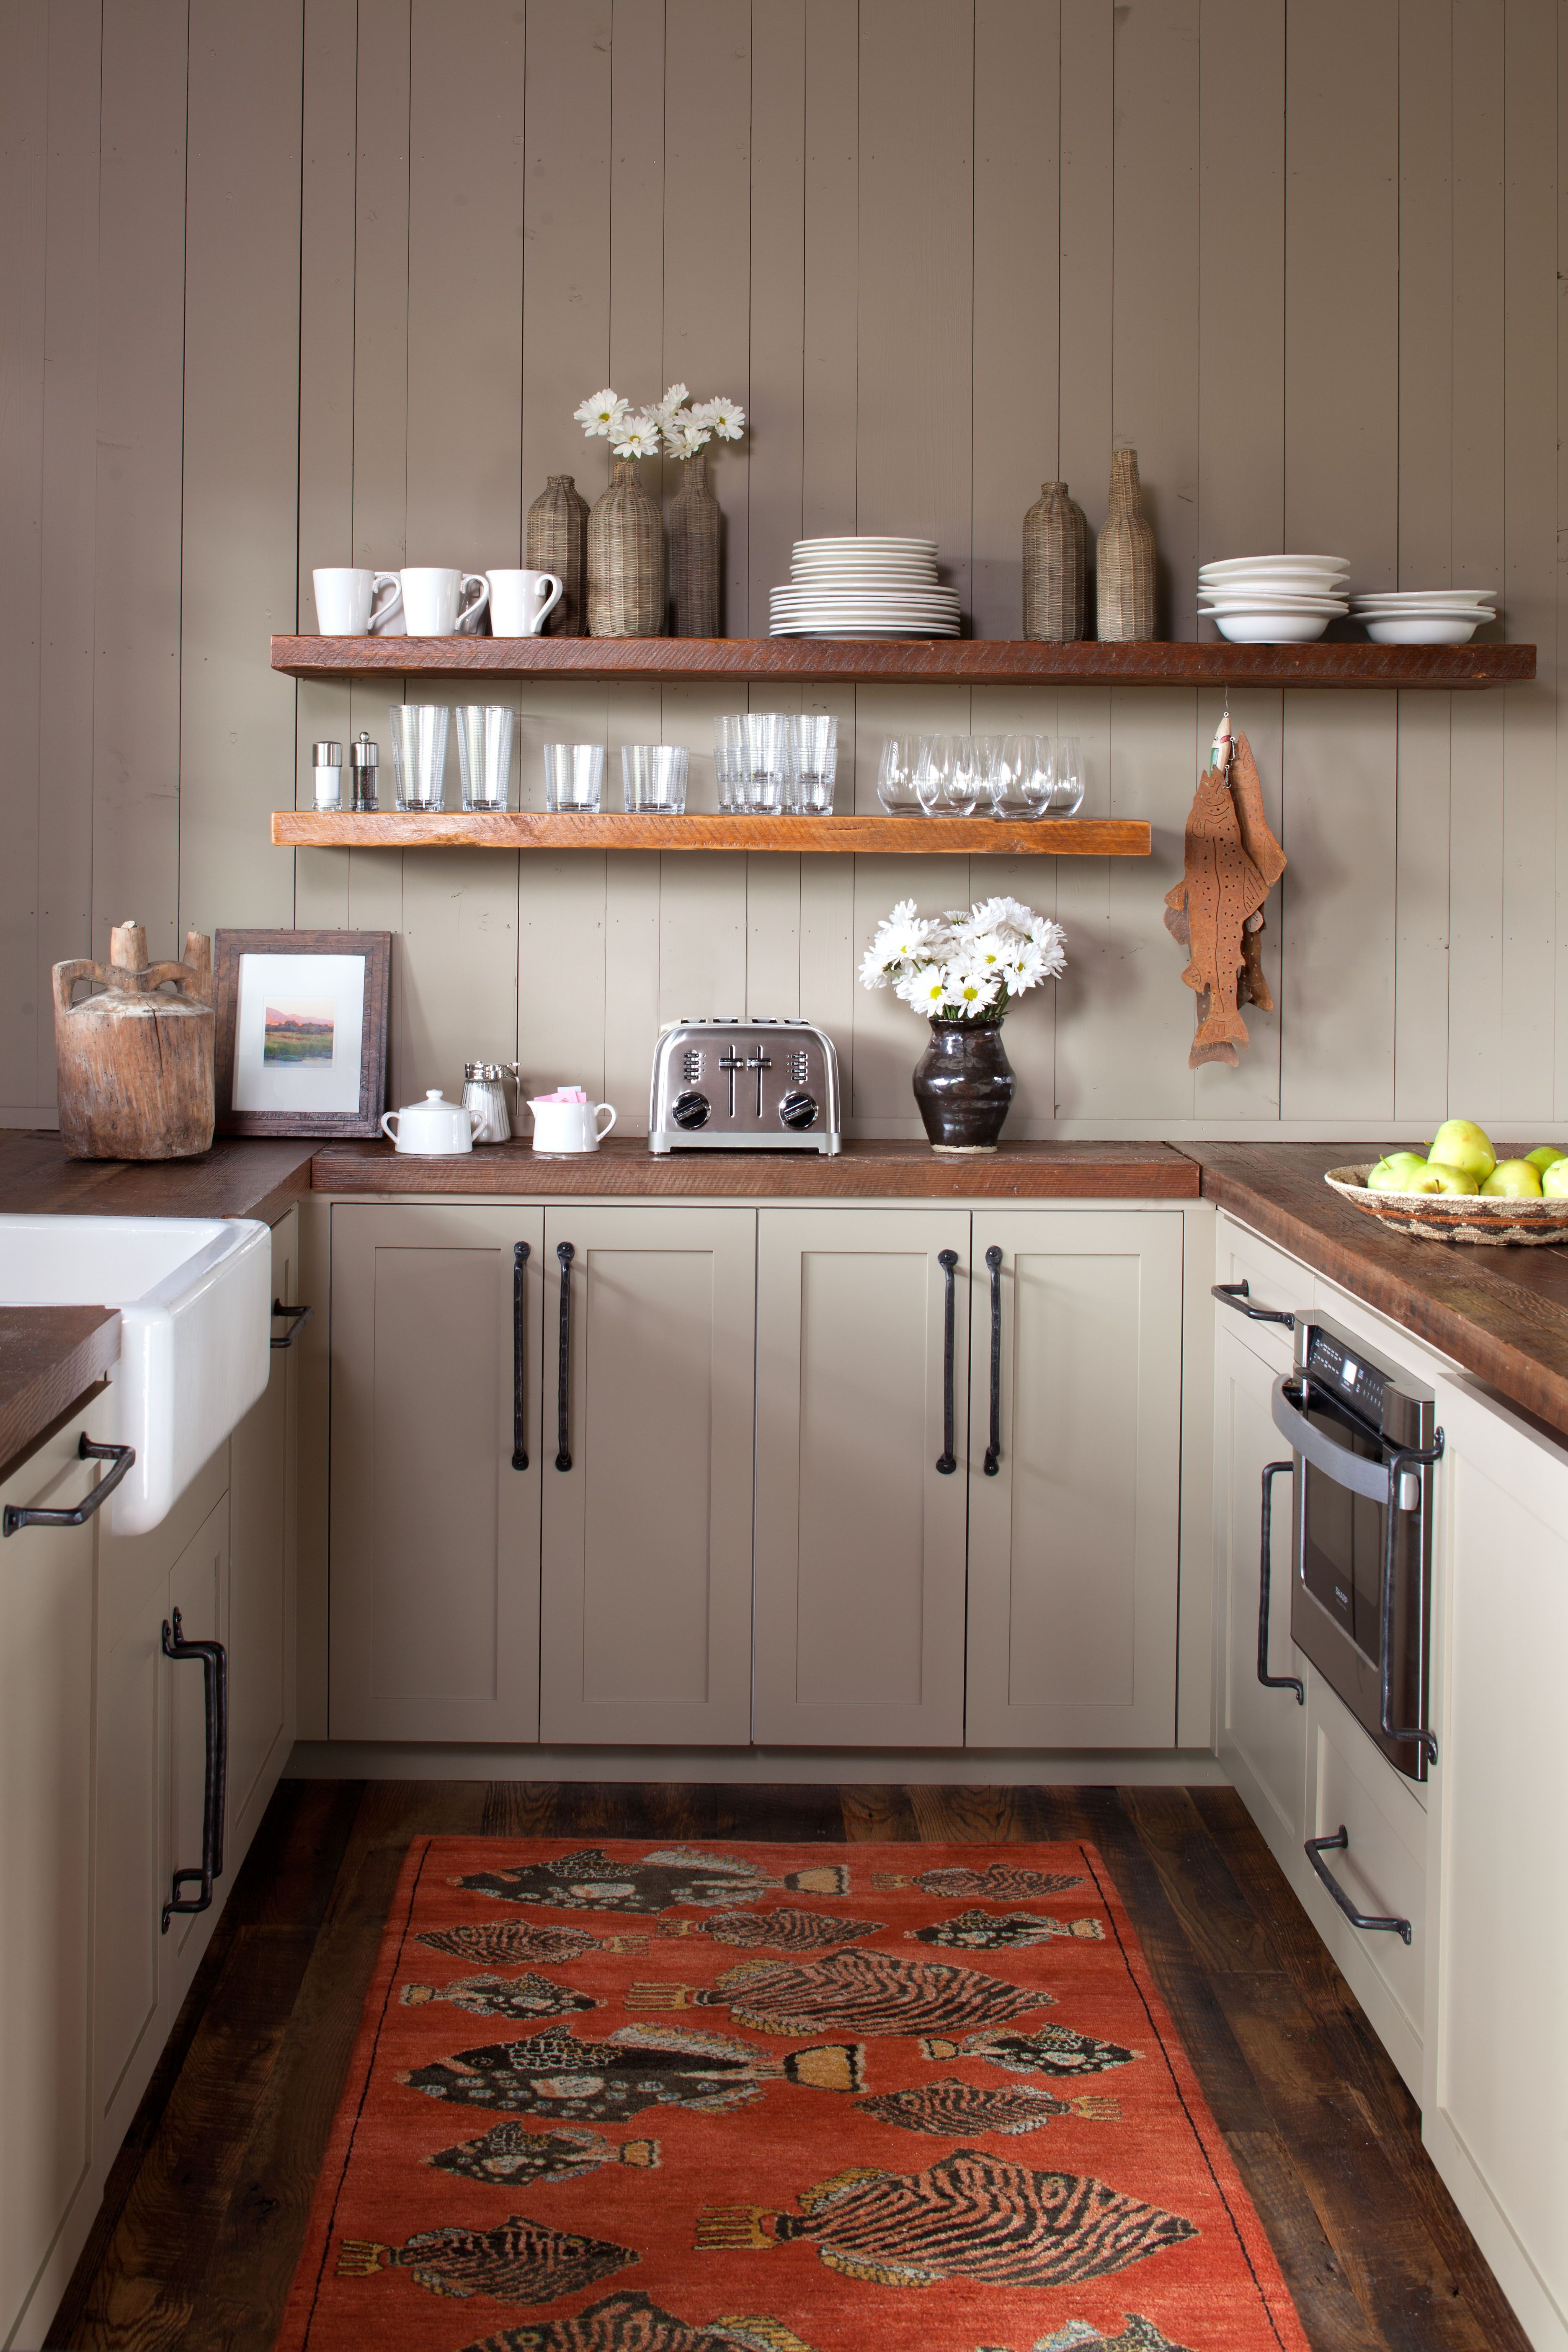 Earth Tone Decorating Ideas How To Decorate With Earth Tones